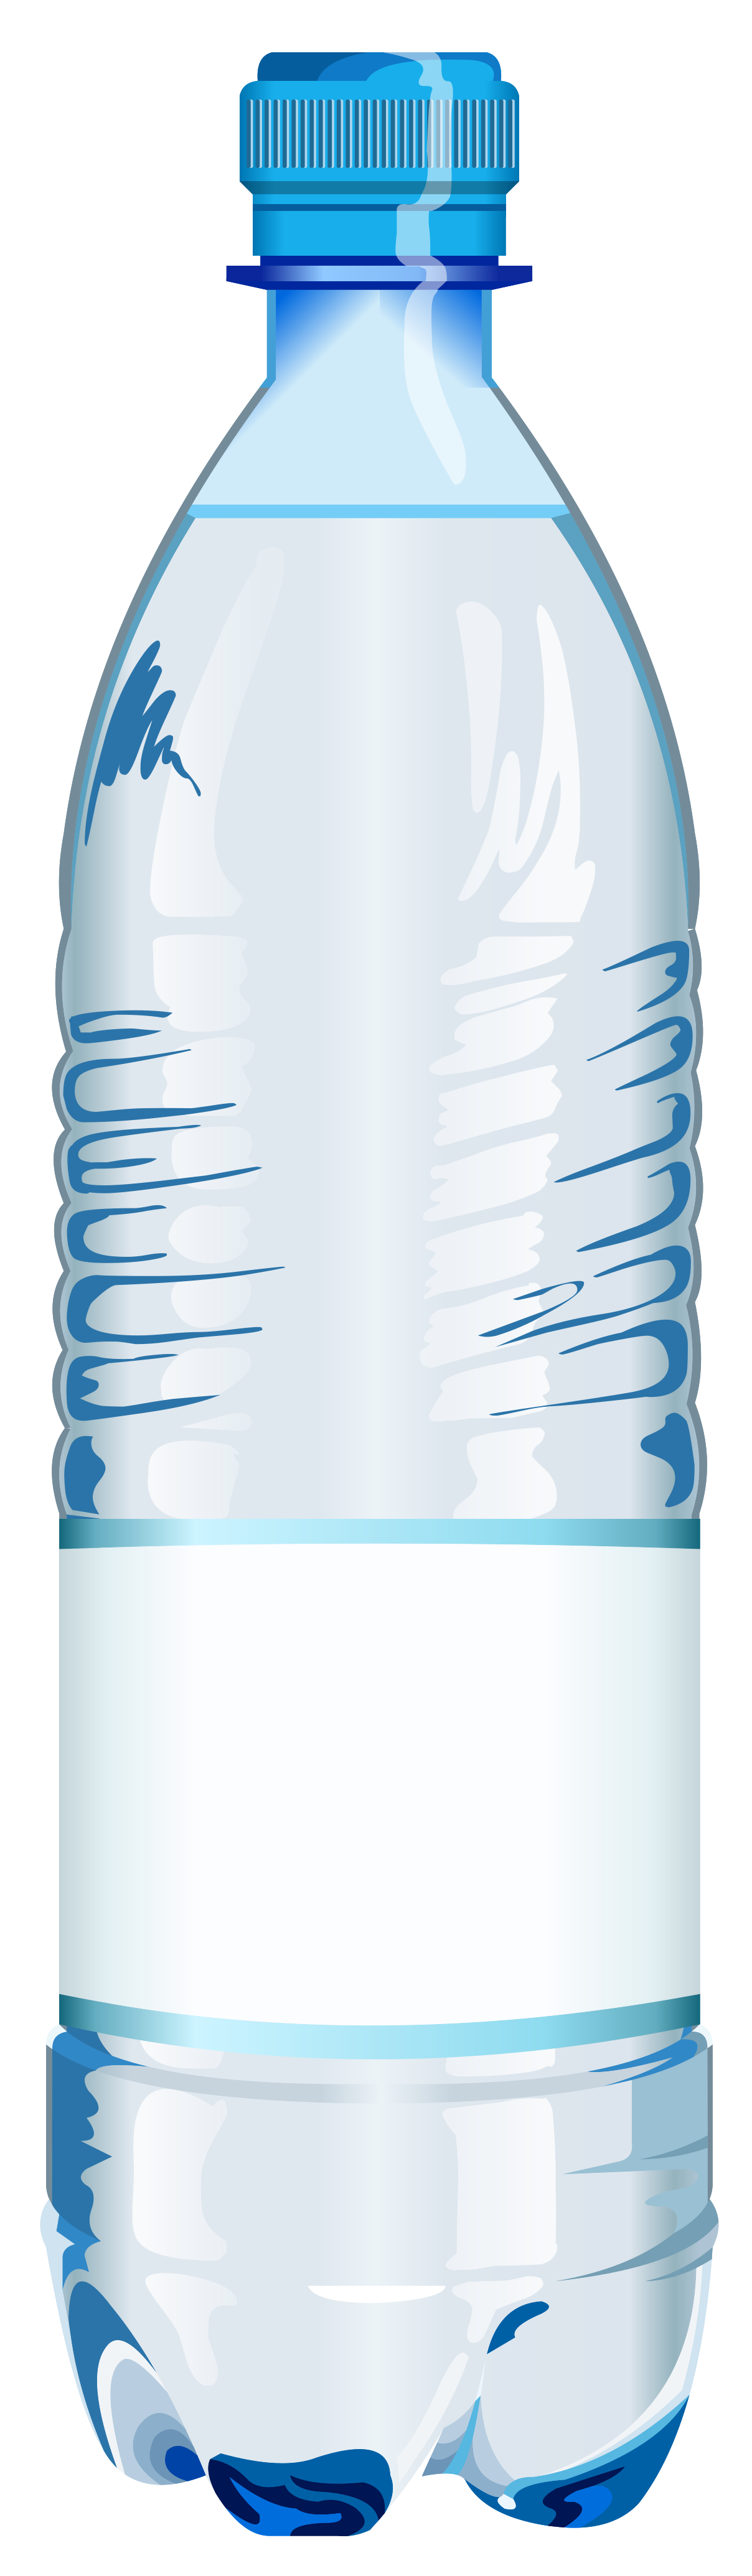 Small of mineral clipart. Bottle water png